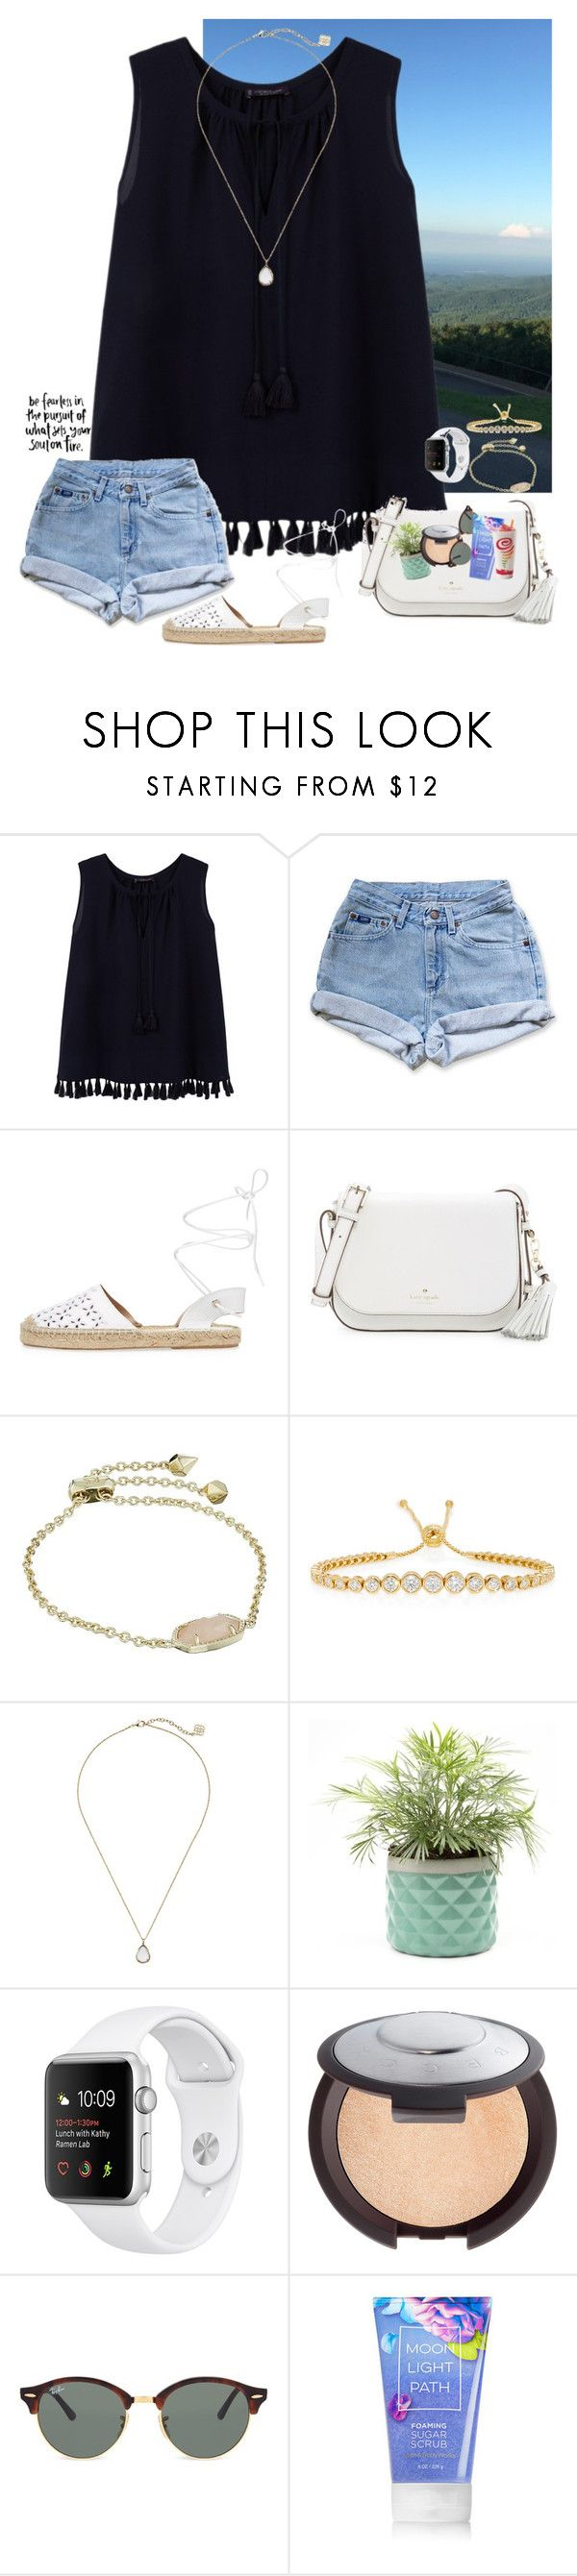 """""""please please please rtd"""" by taybug2147 ❤ liked on Polyvore featuring Violeta by Mango, Levi's, Maiden Lane, Kate Spade, Kendra Scott, Jemma Wynne, Becca, Ray-Ban and bathroom"""